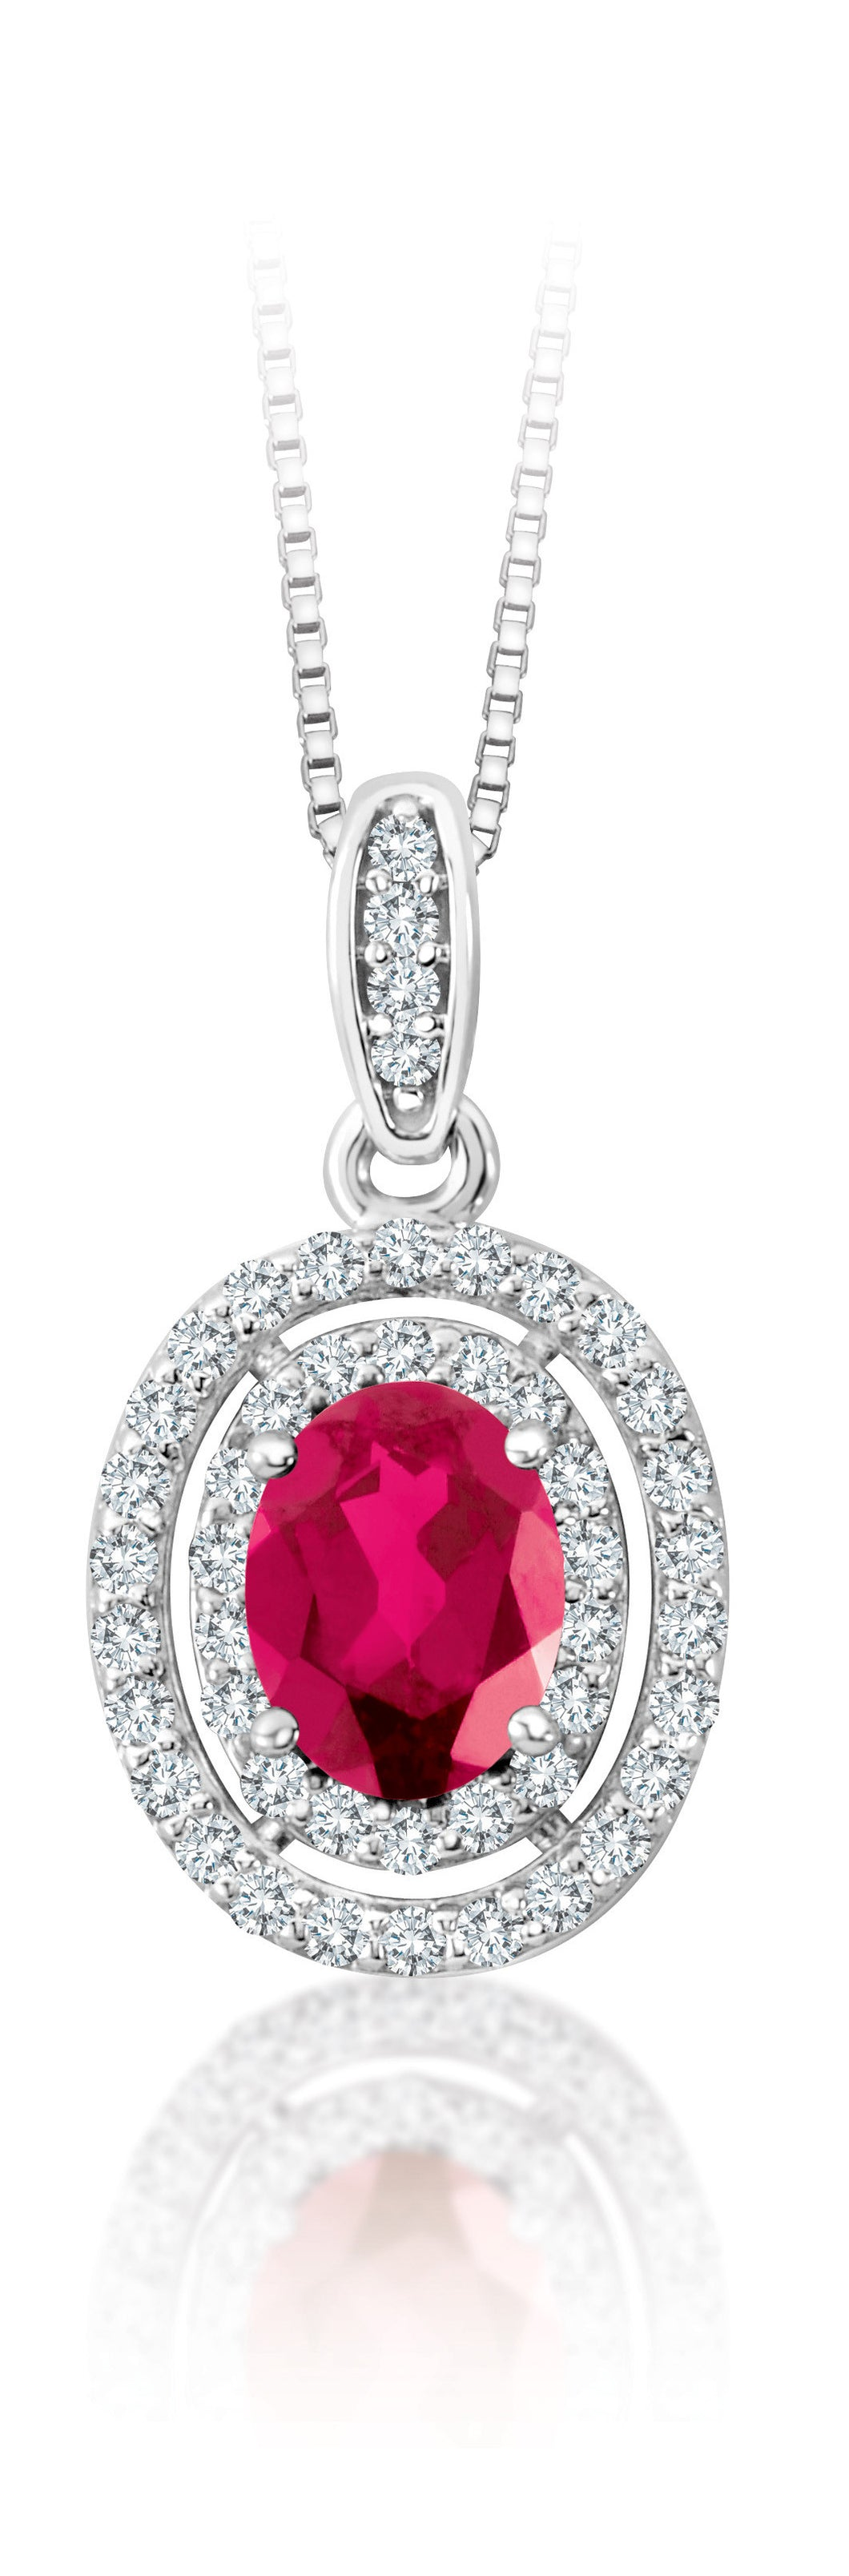 14Kt White Gold Ruby Diamond Double Halo Pendant